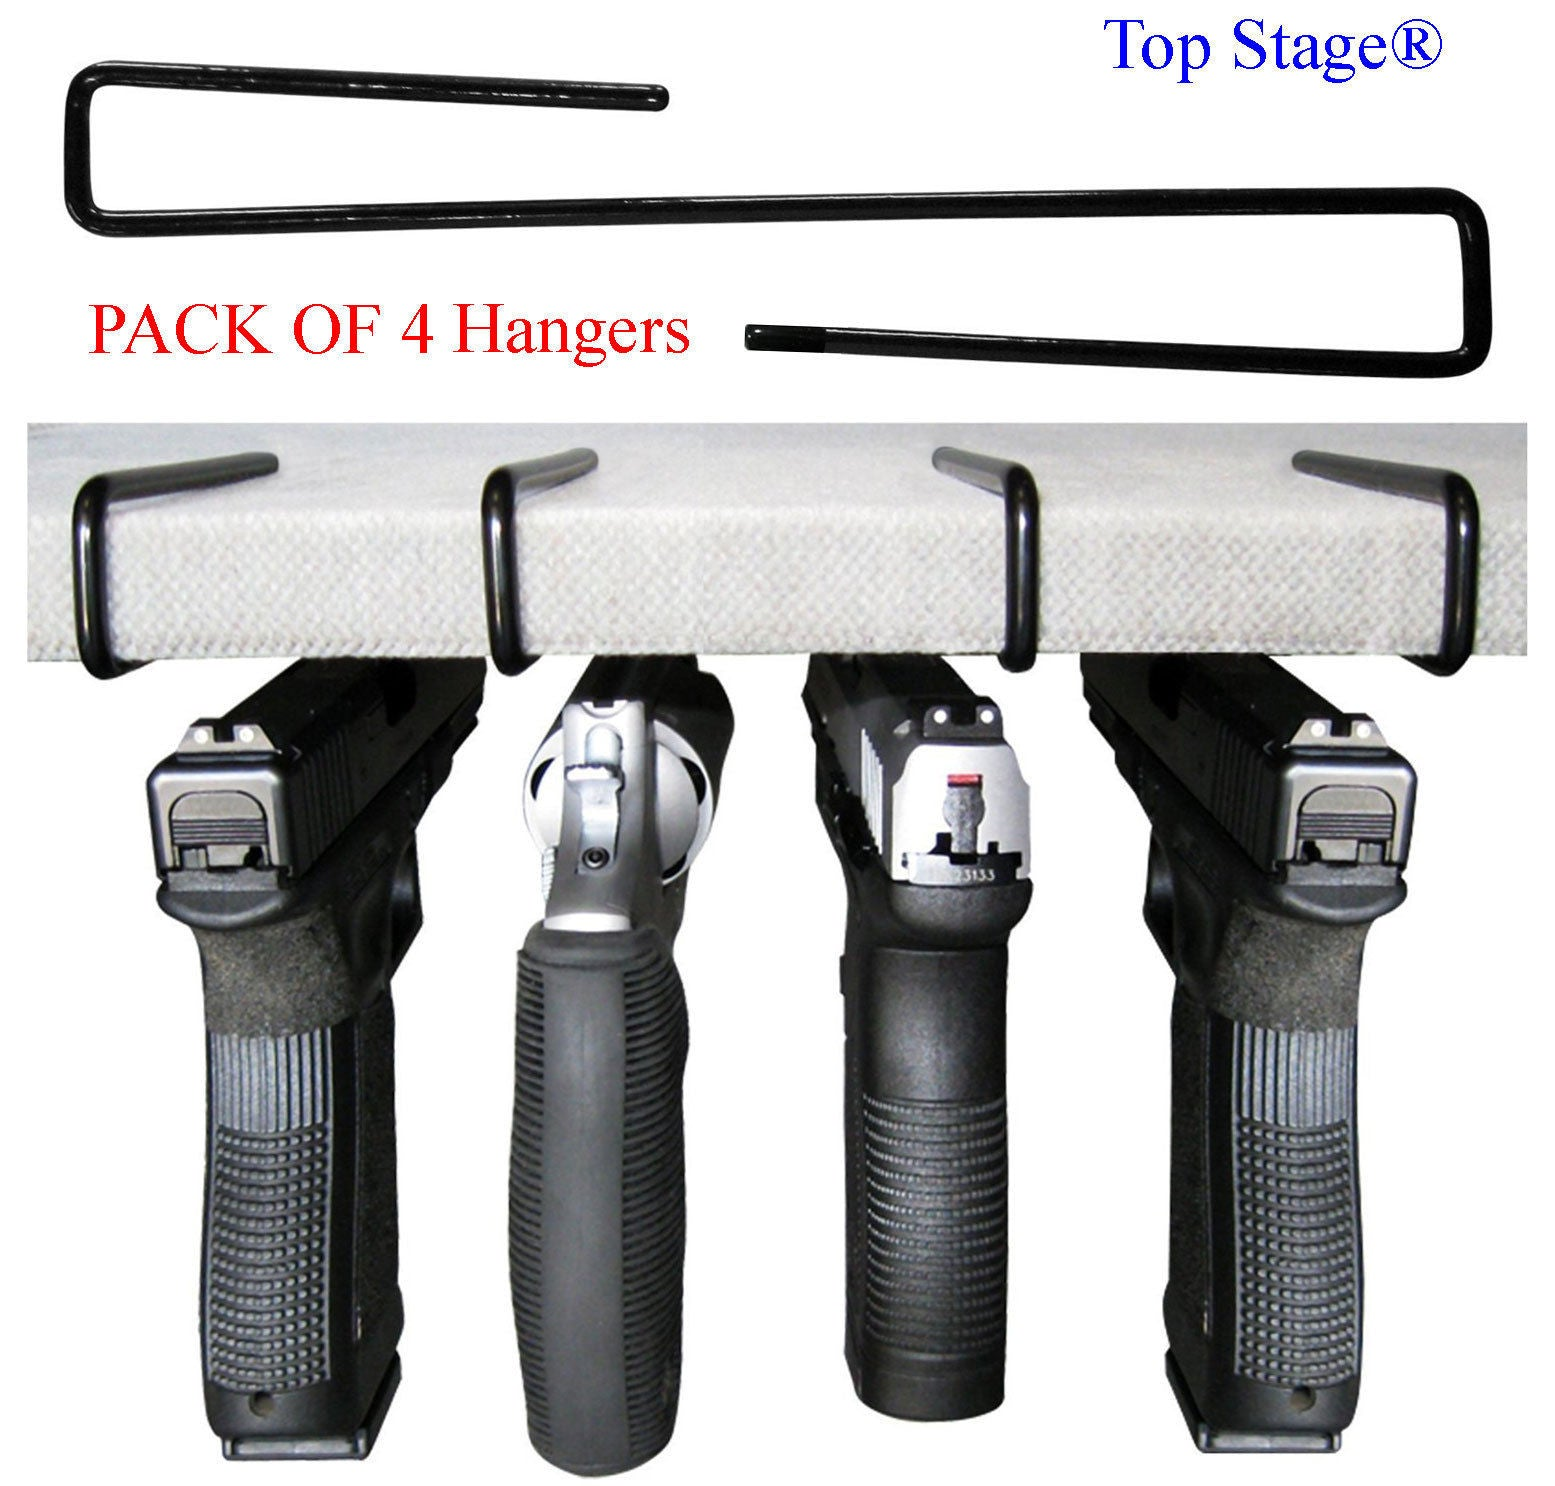 Gun Pistol Storage Rack - Pack of 4 Handgun Hangers